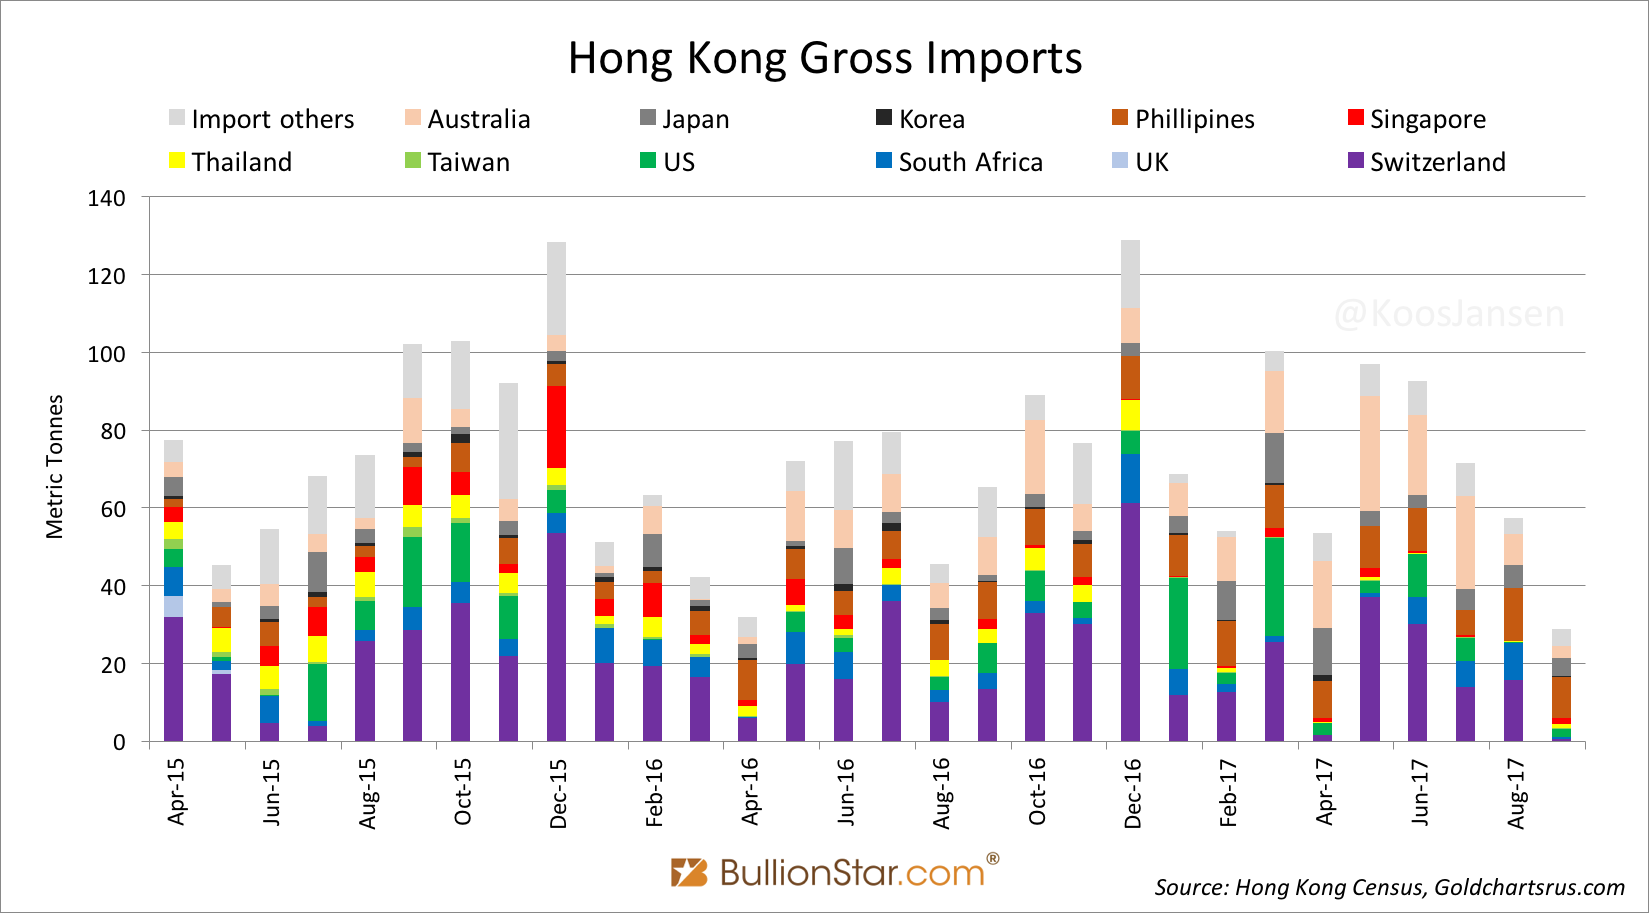 Hong Kong Gross Imports, Apr 2015 - Aug 2017